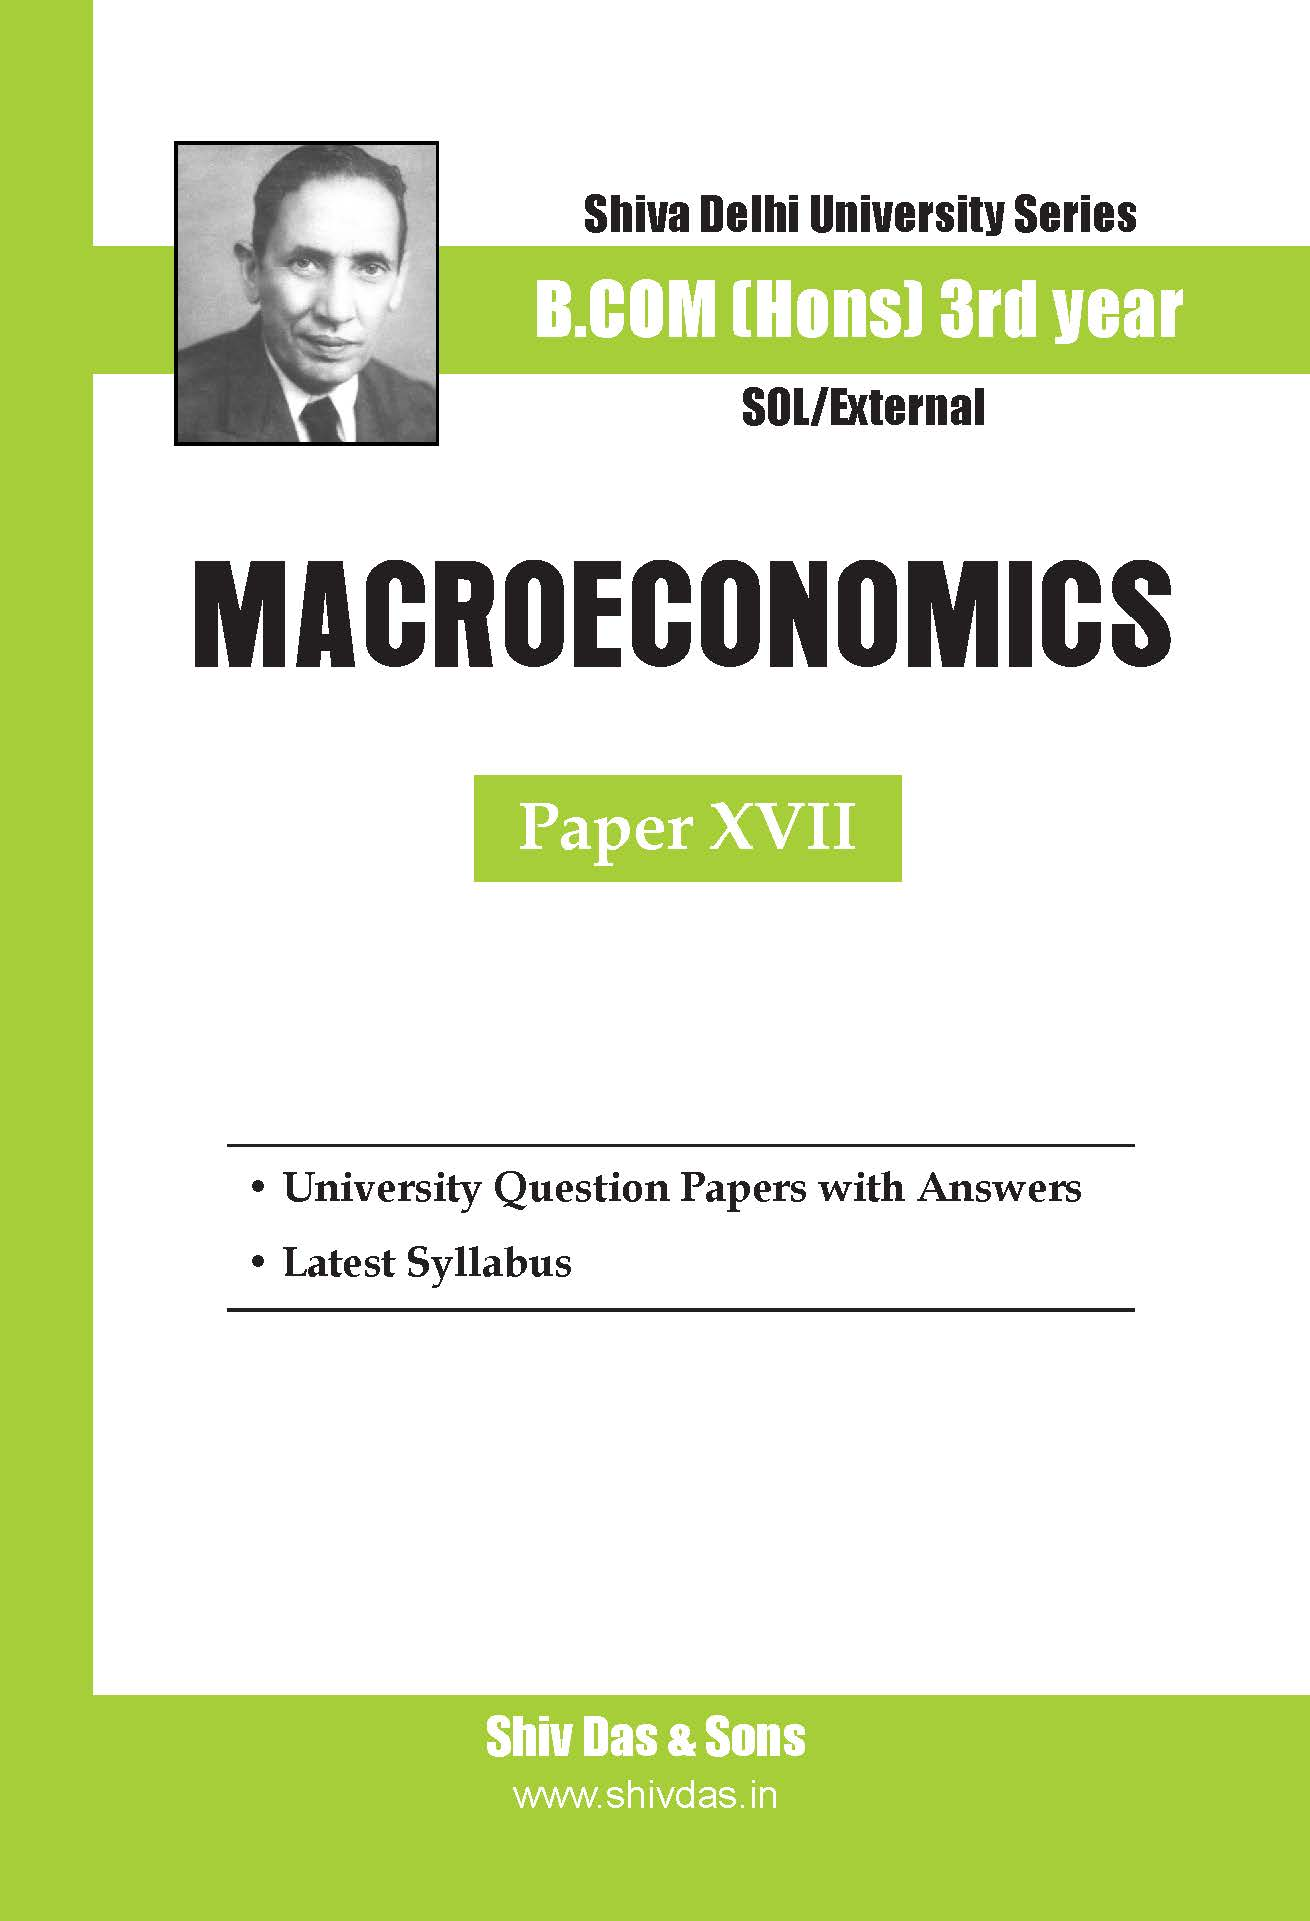 Macroeconomics for B.Com Hons SOL/External 3rd Year